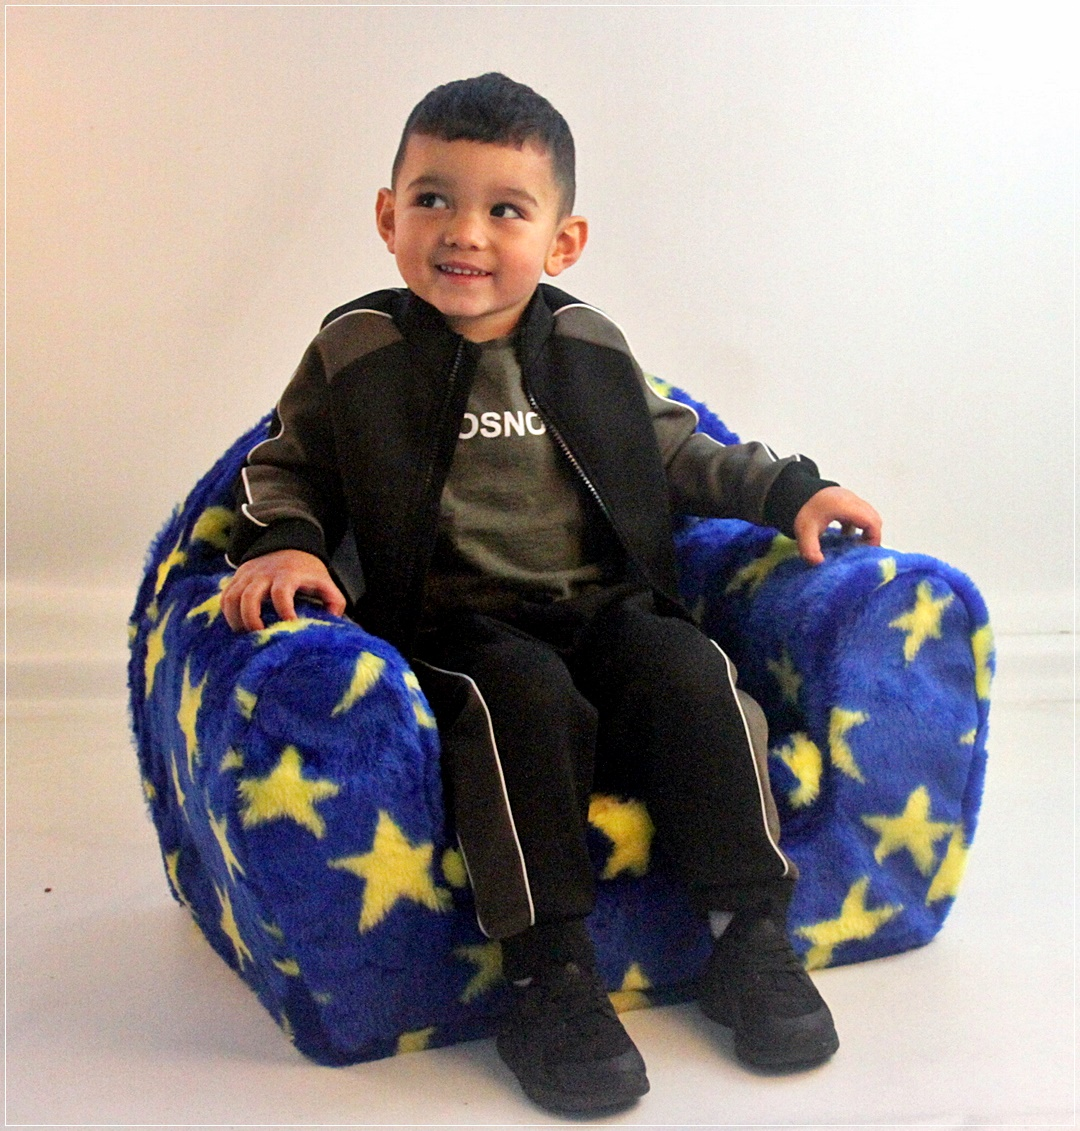 Toddler Foam Chair Kids Foam Chair I Pad Tv Relaxing Toddlers Chair Very